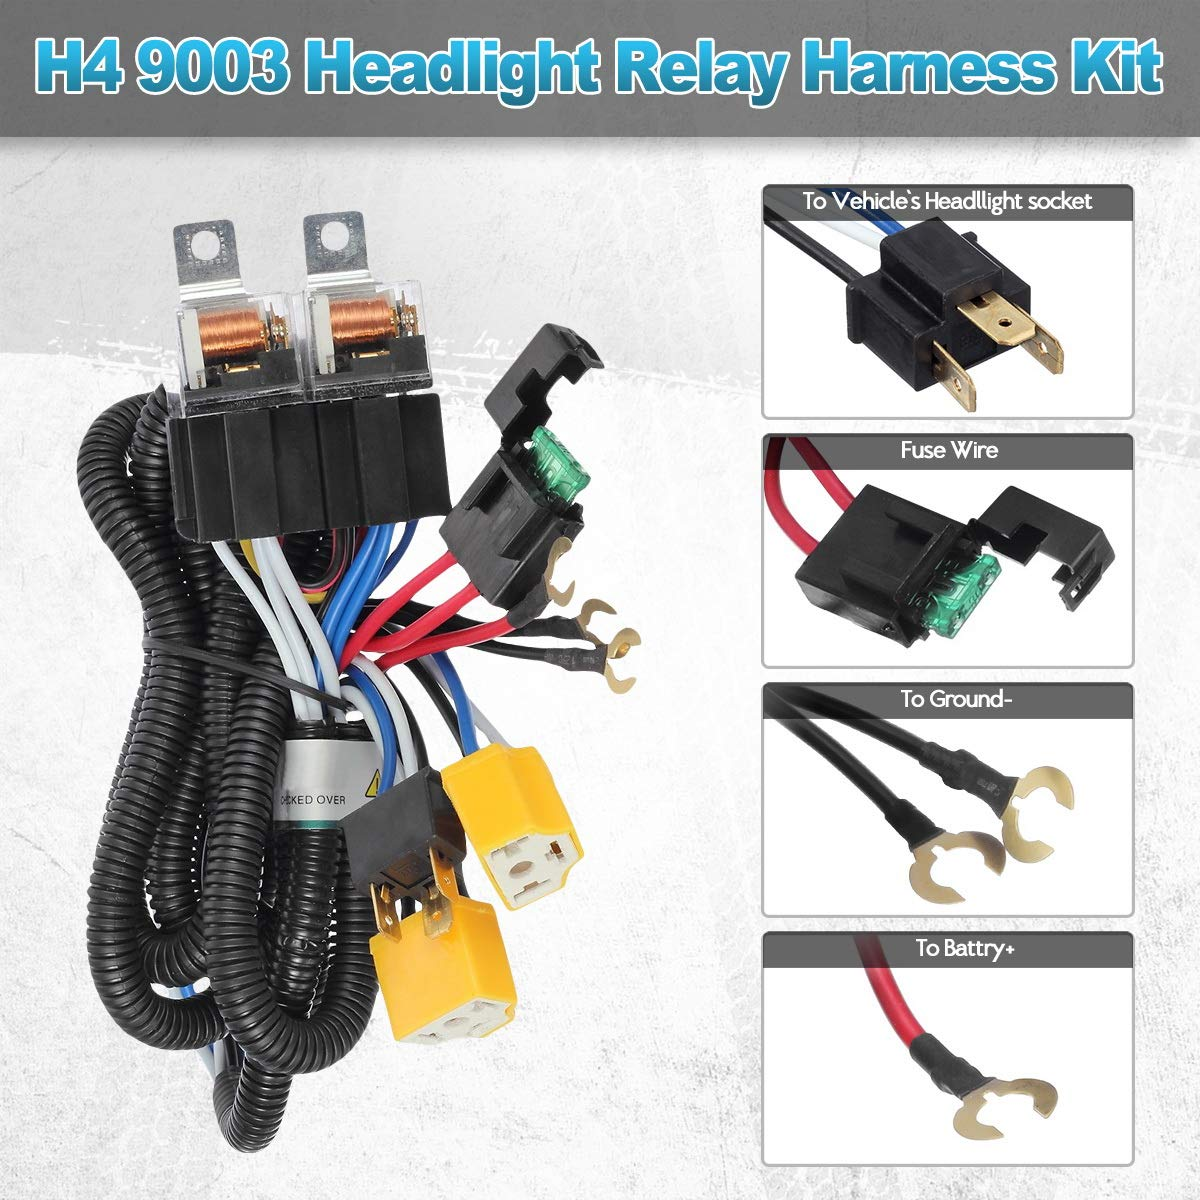 Partsam H4 9003 Headlight Relay Wiring Harness Kit High Low Beam Heat Ceramic Socket Plugs Hid Conversion Compatible With Toyota Pickup